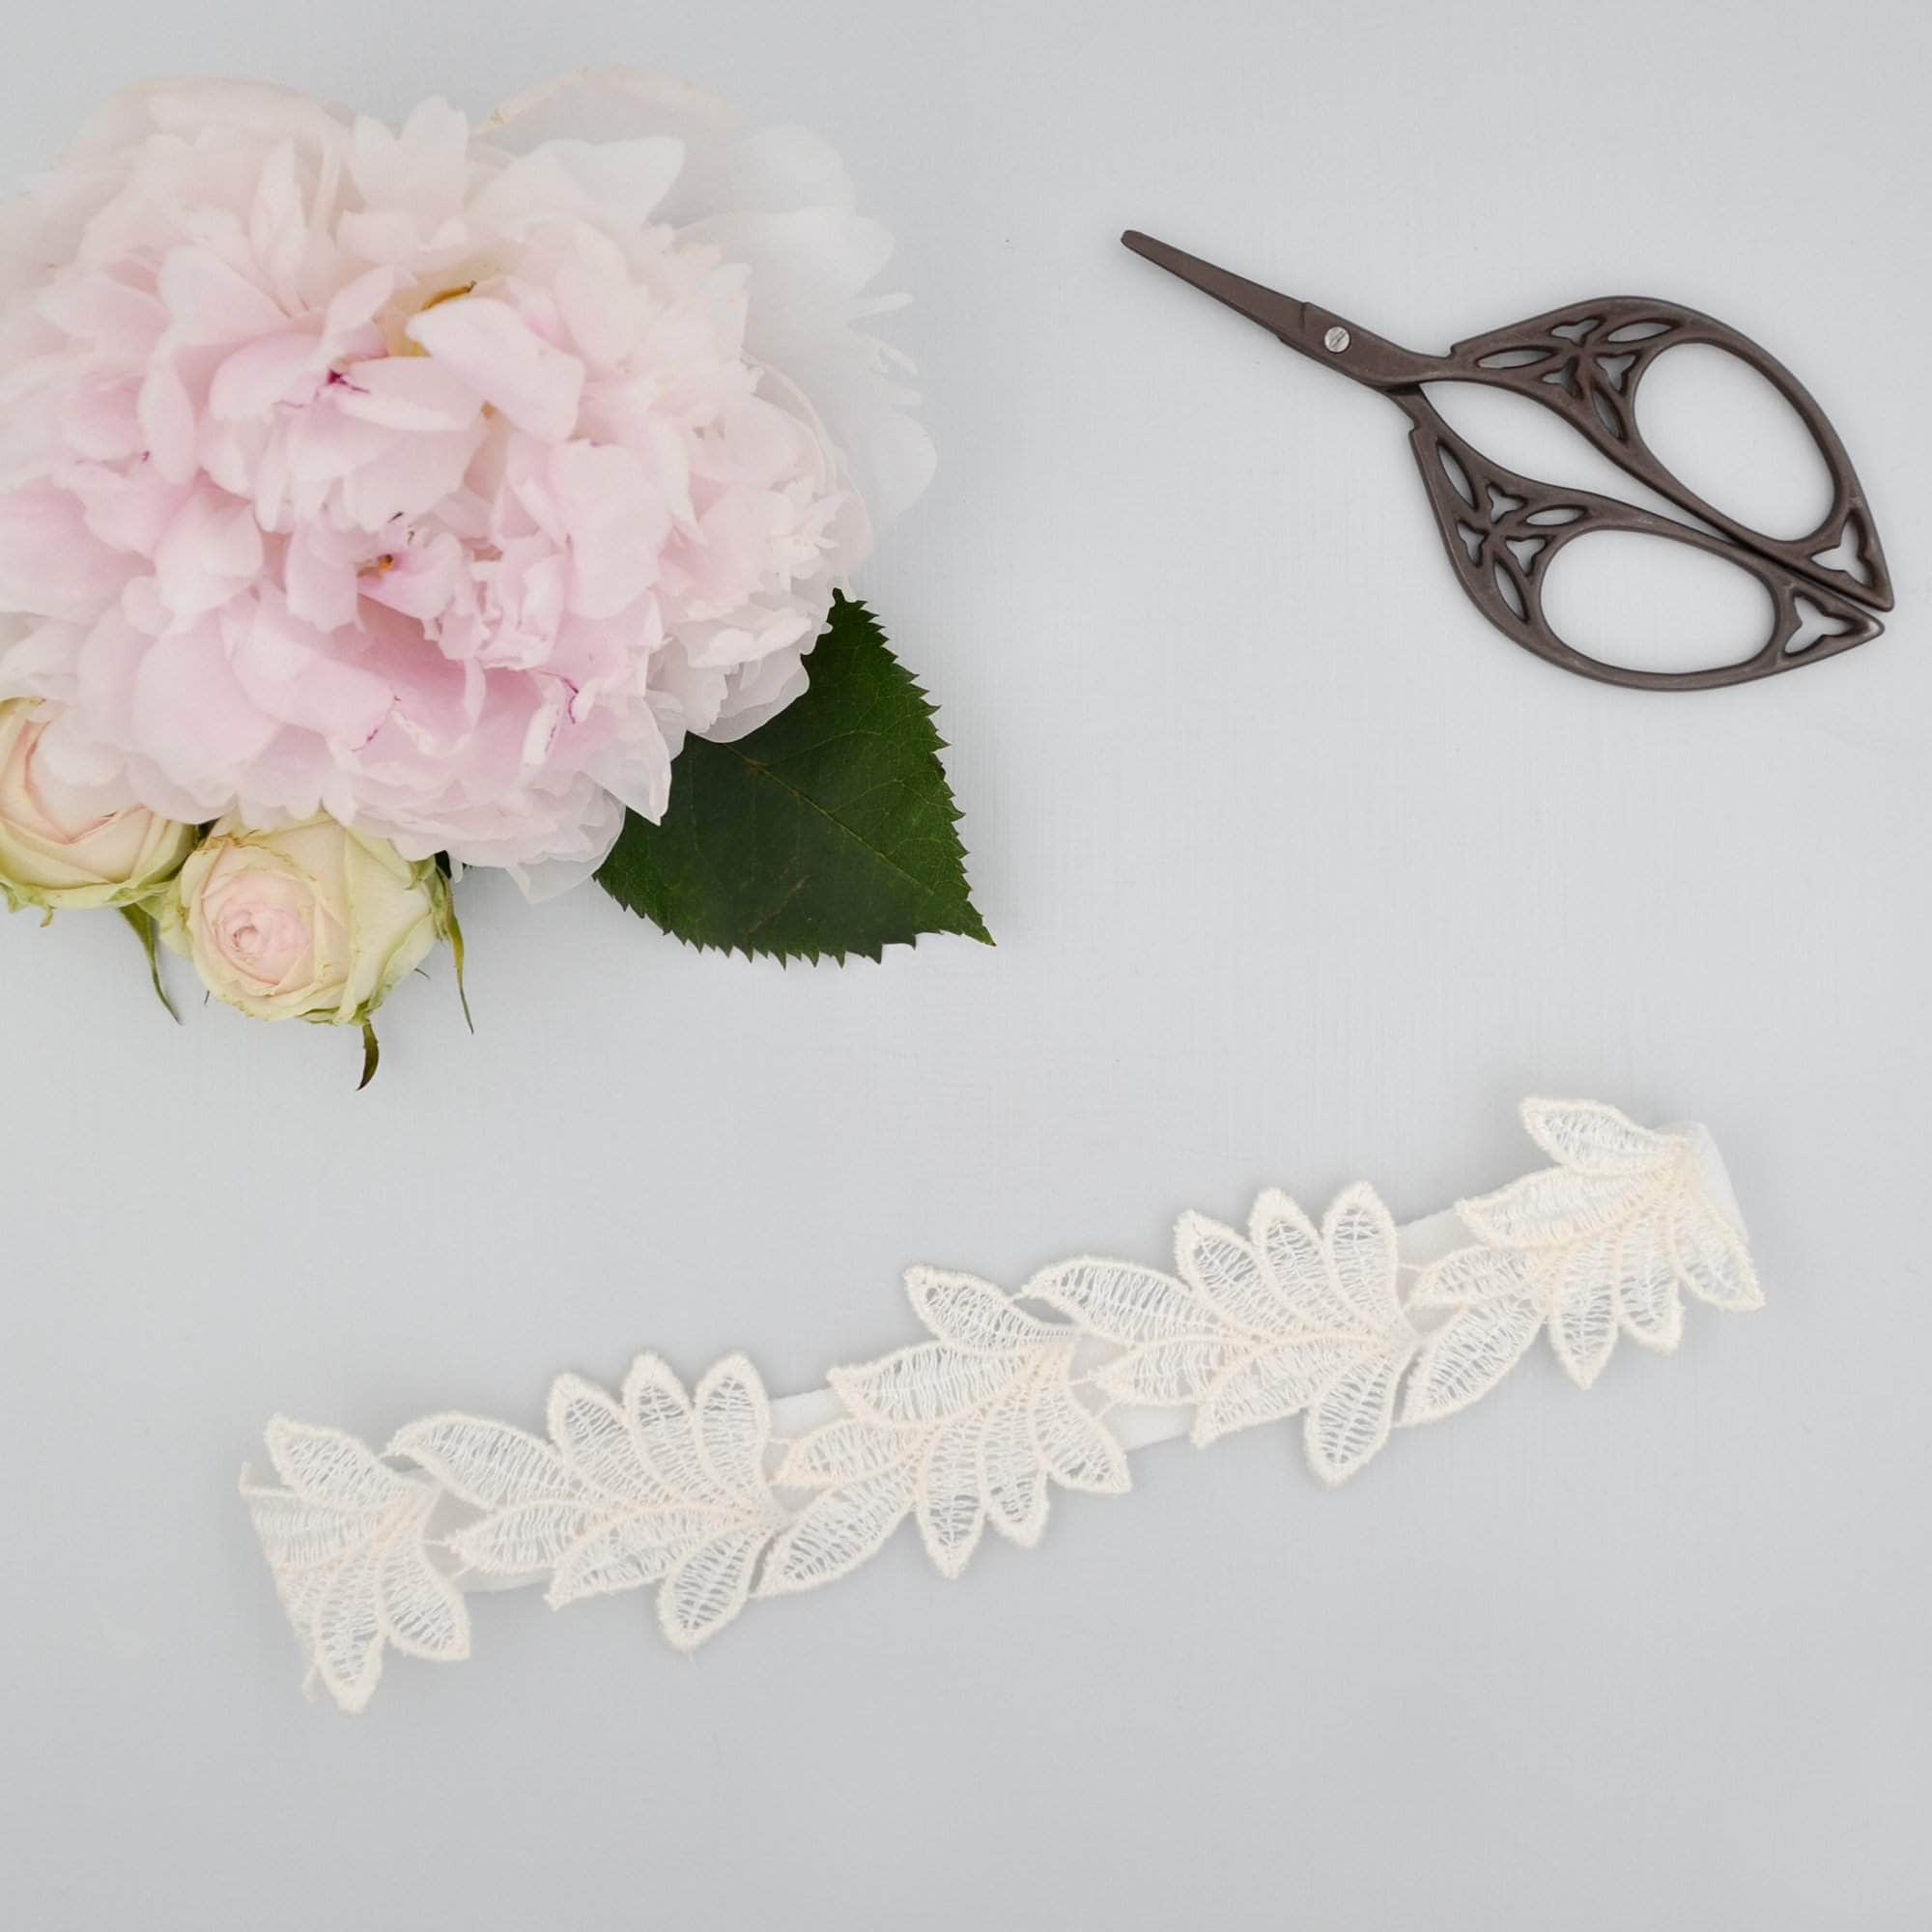 sleek leaf lace wedding garter